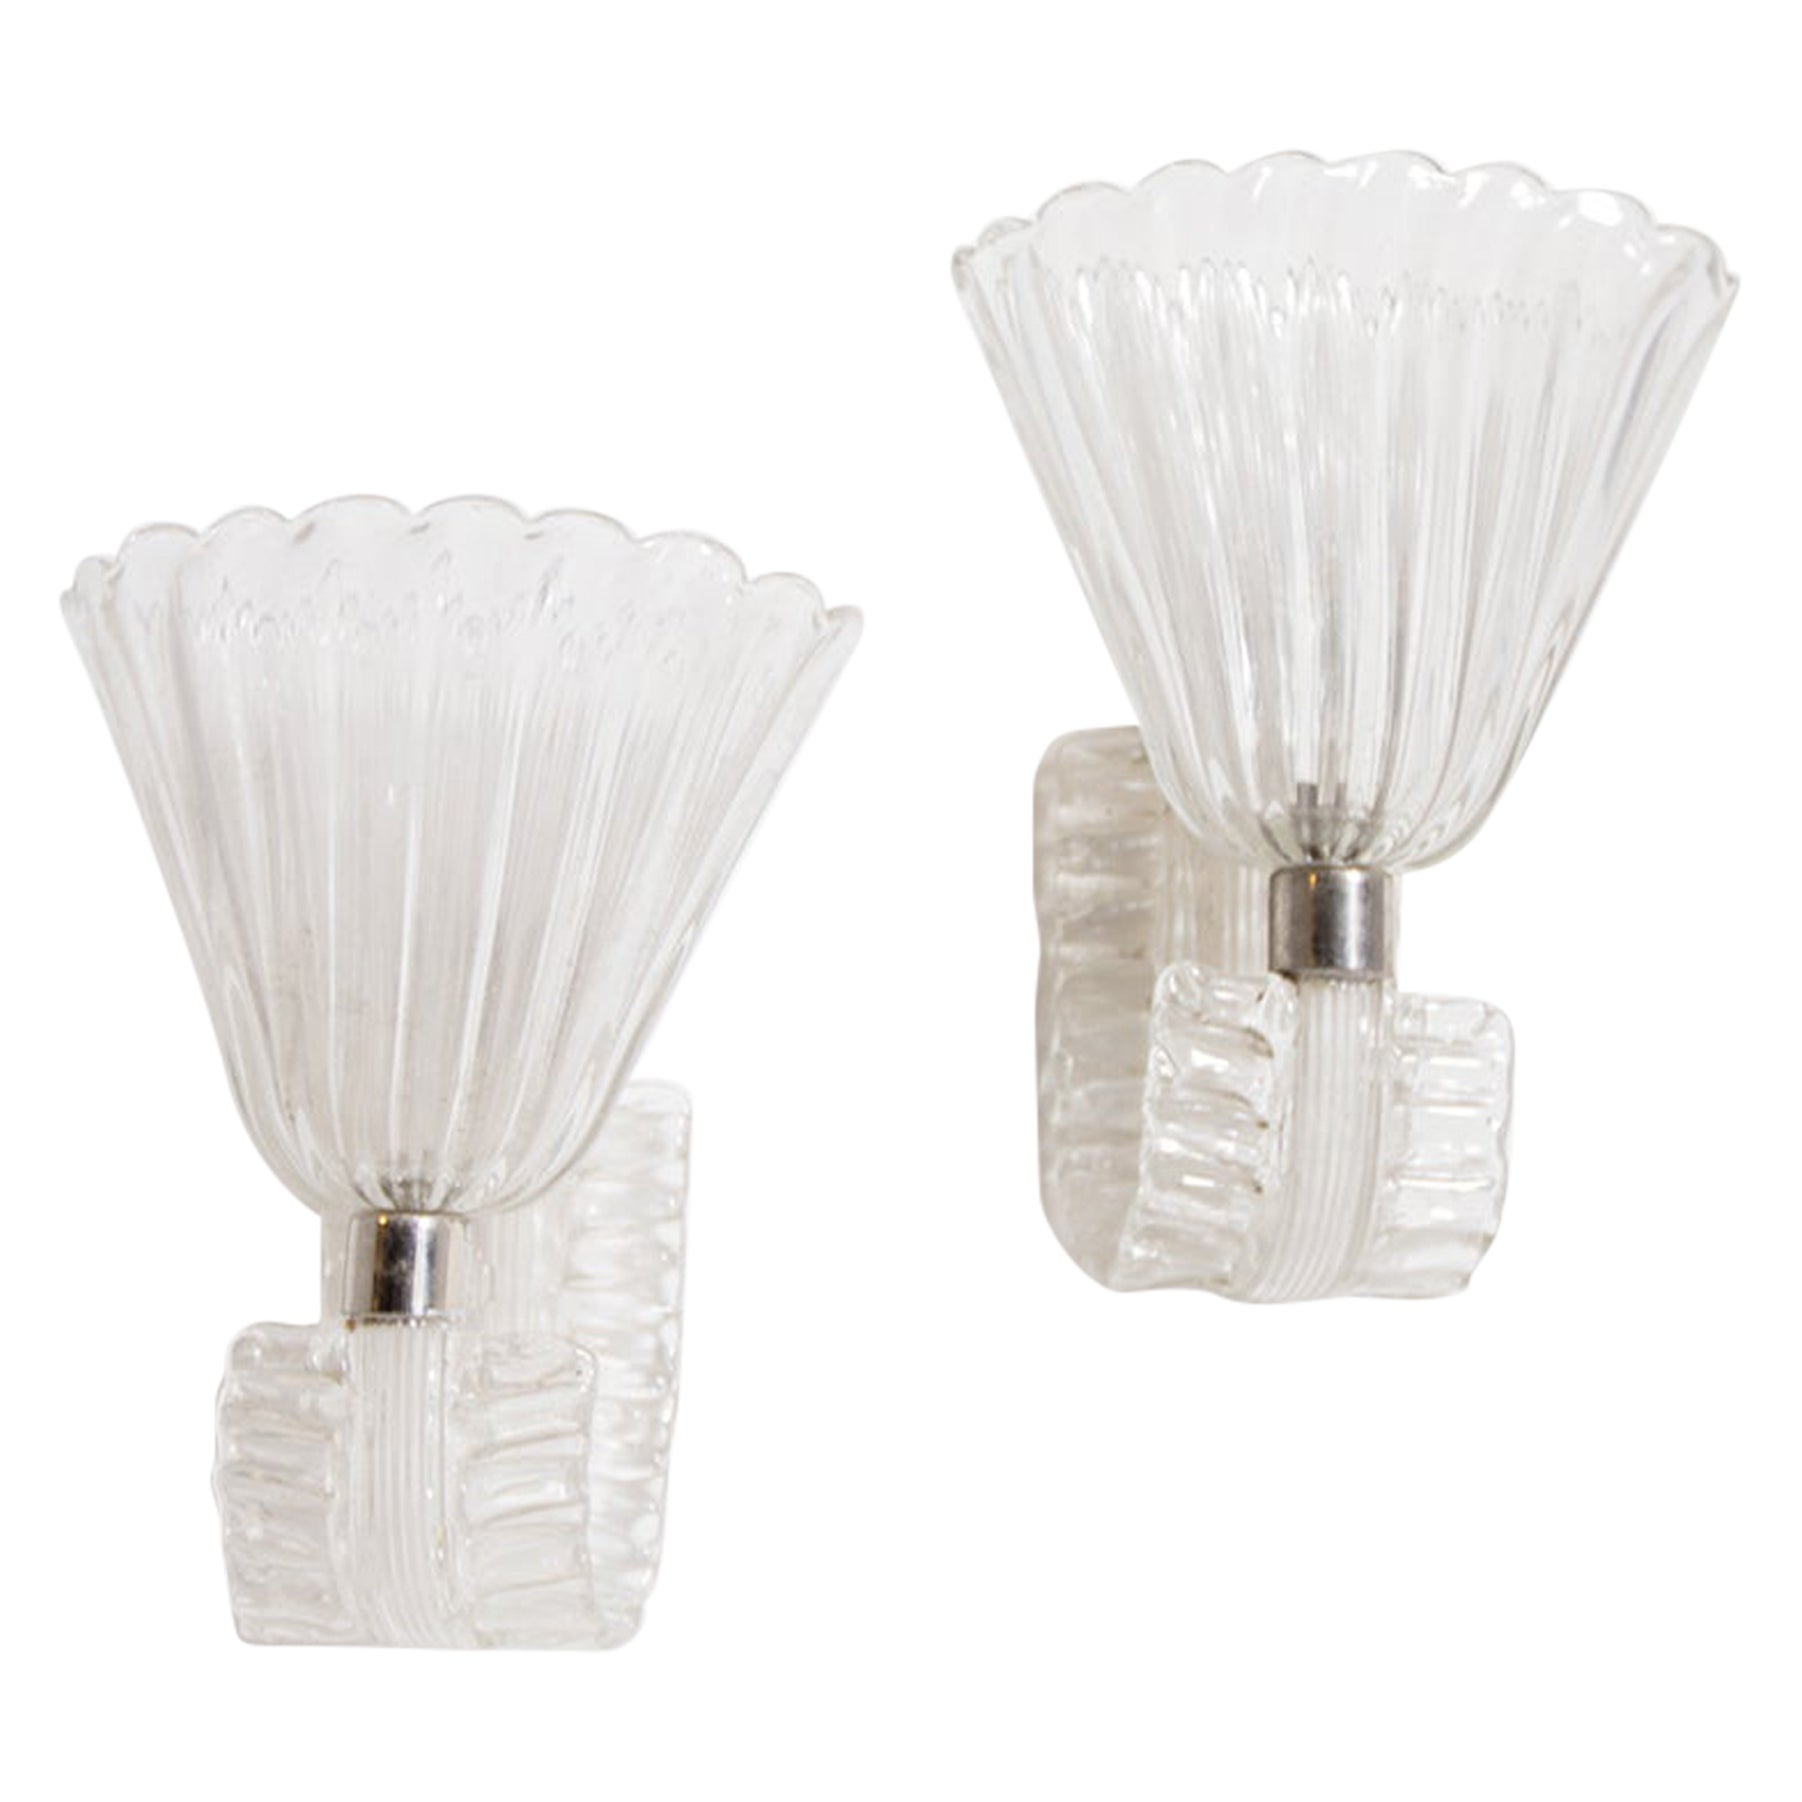 Pair of Wall Lamps by Barovier & Toso in Murano Glass, 1950s